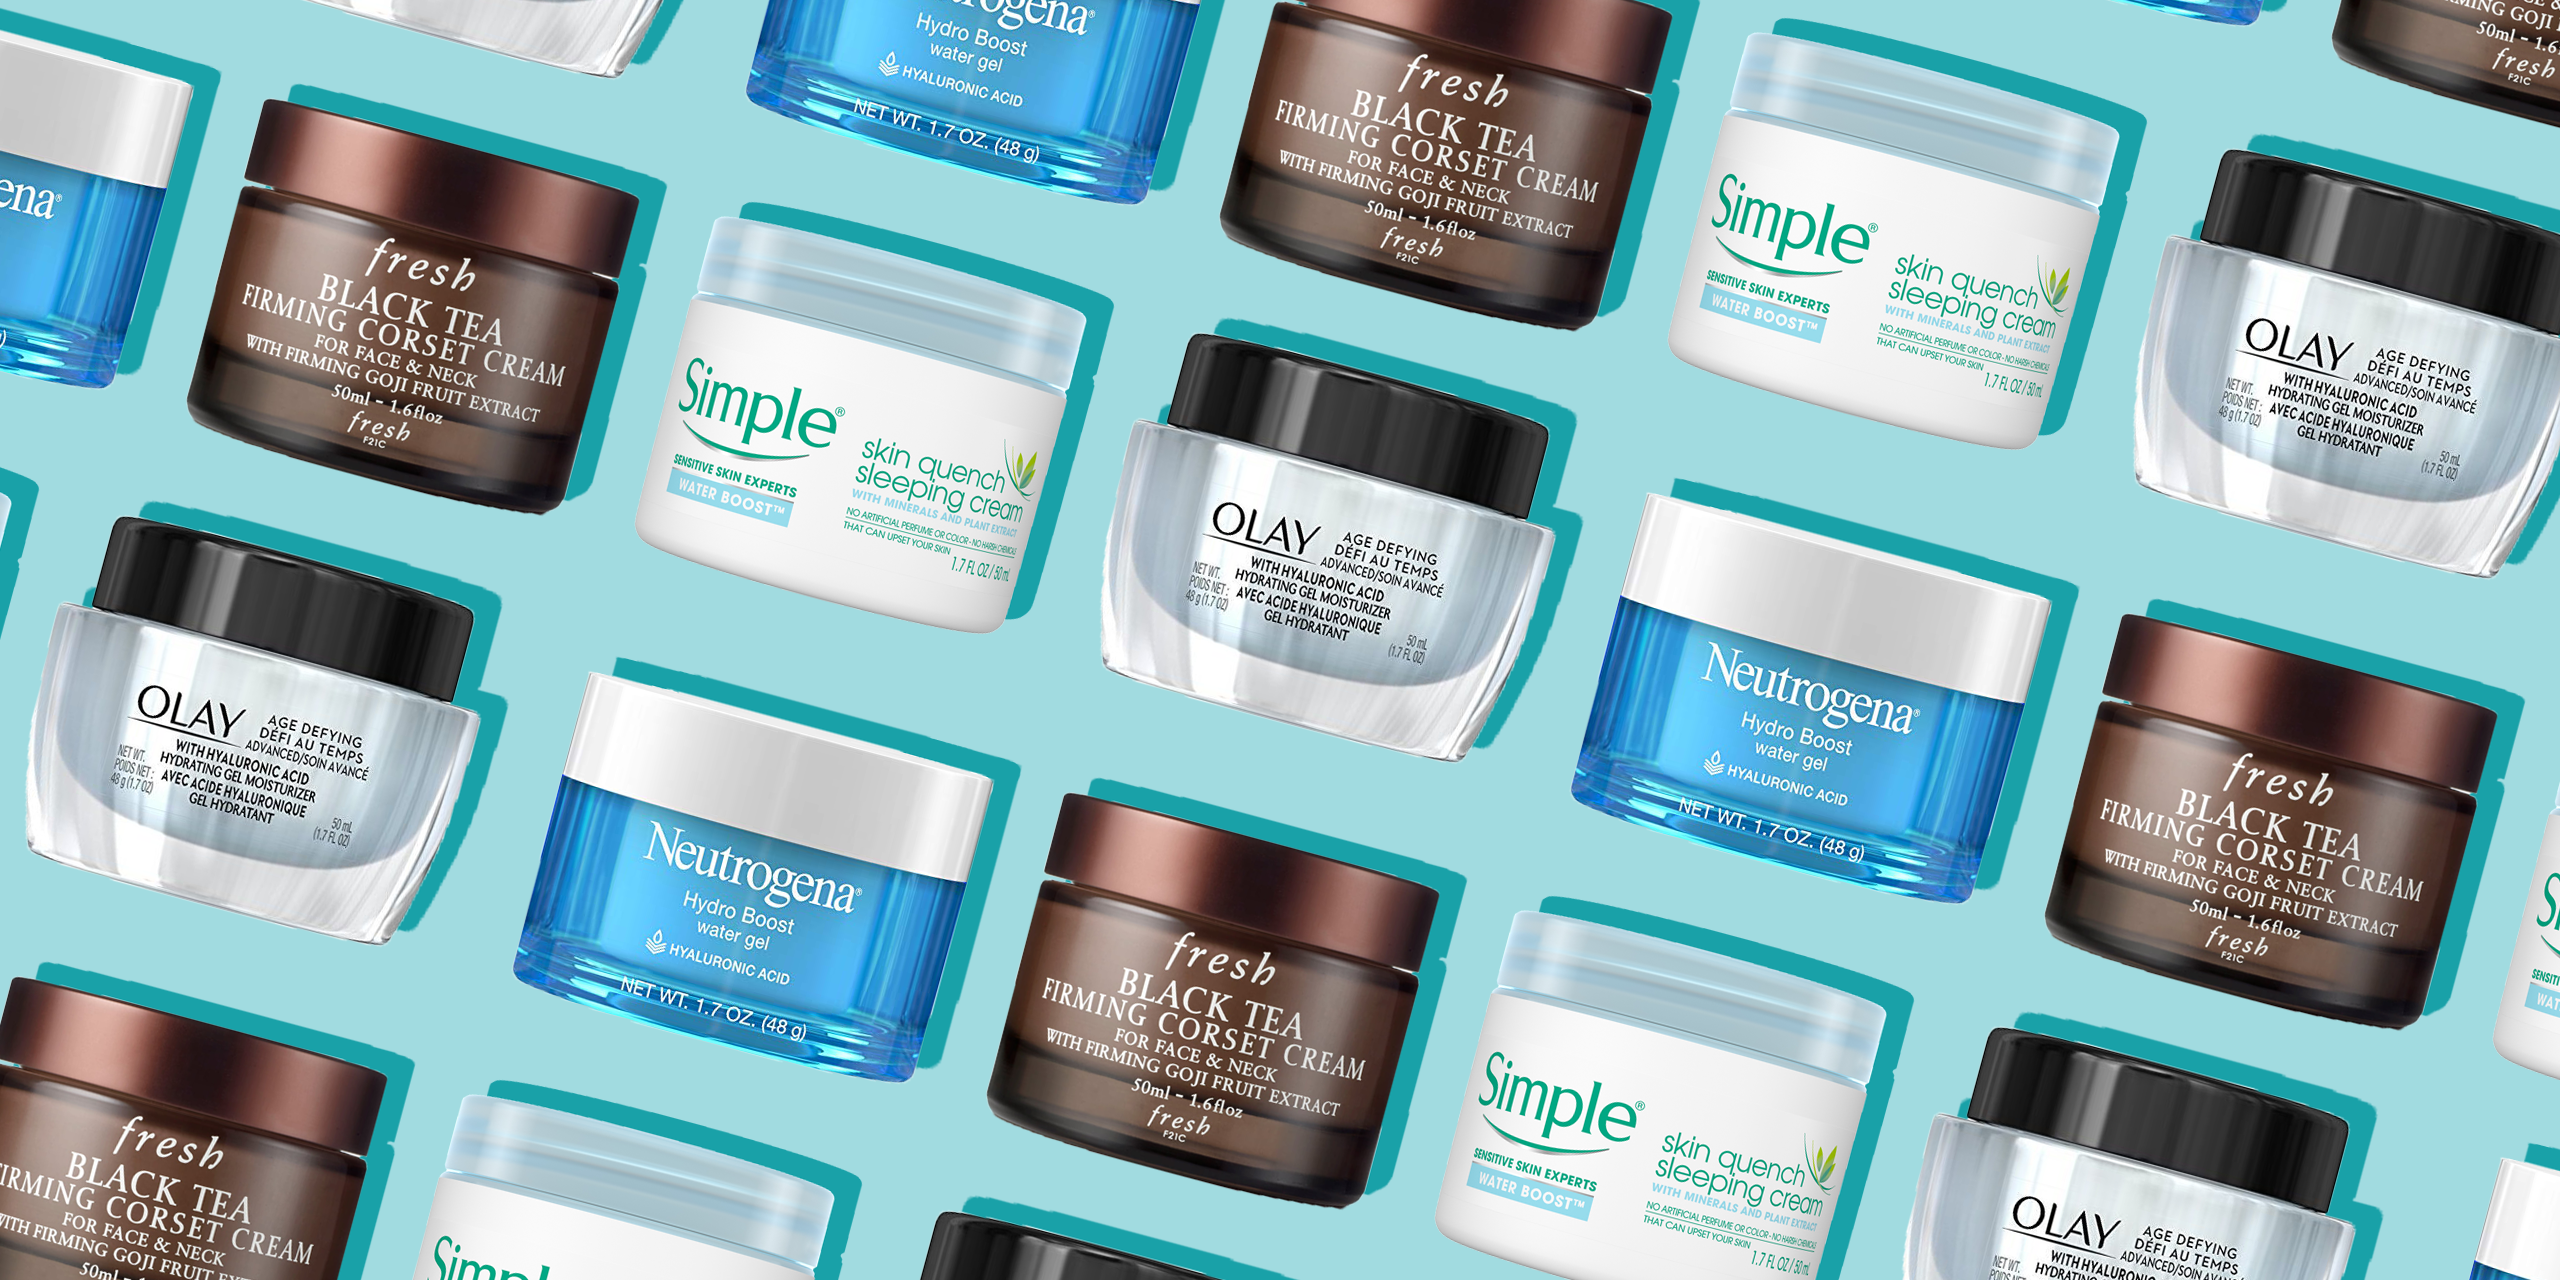 12 Best Neck-Firming Creams to Reduce Wrinkles, According to Dermatologists